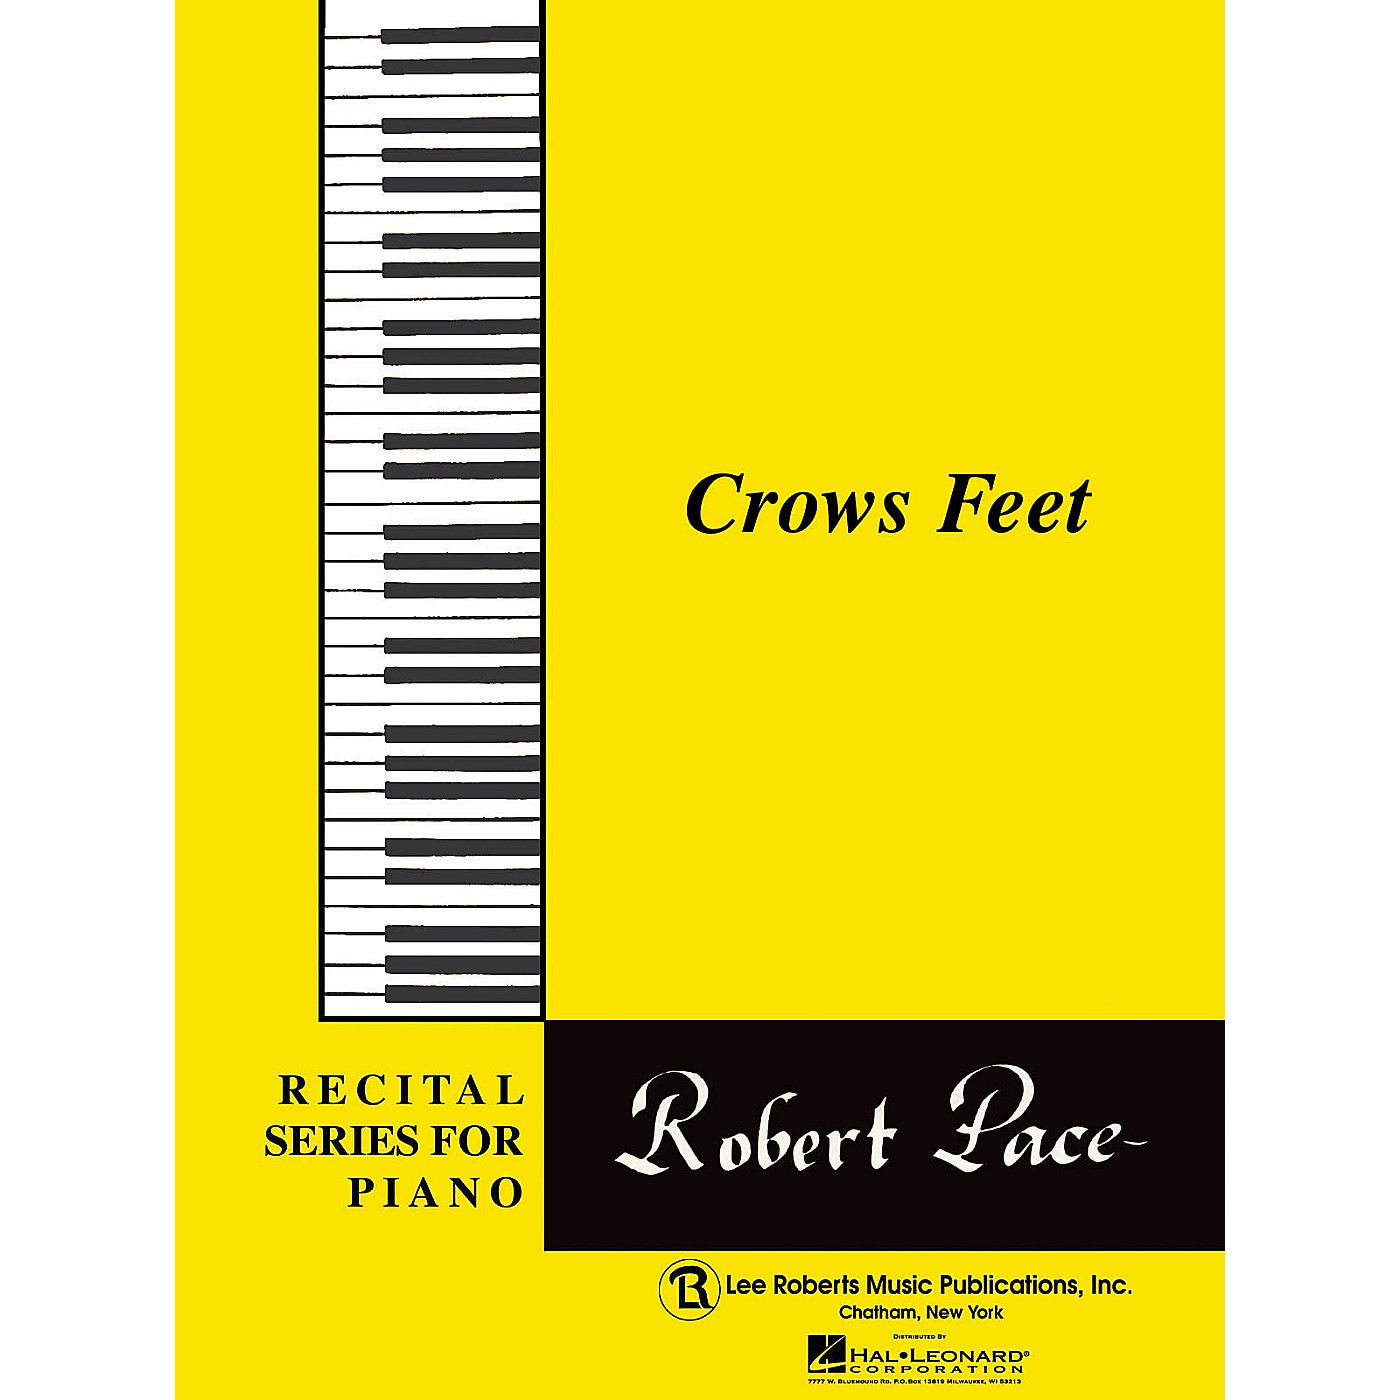 Lee Roberts Recital Series For Piano, Yellow (Book II) Crows Feet Pace Piano Education Series thumbnail